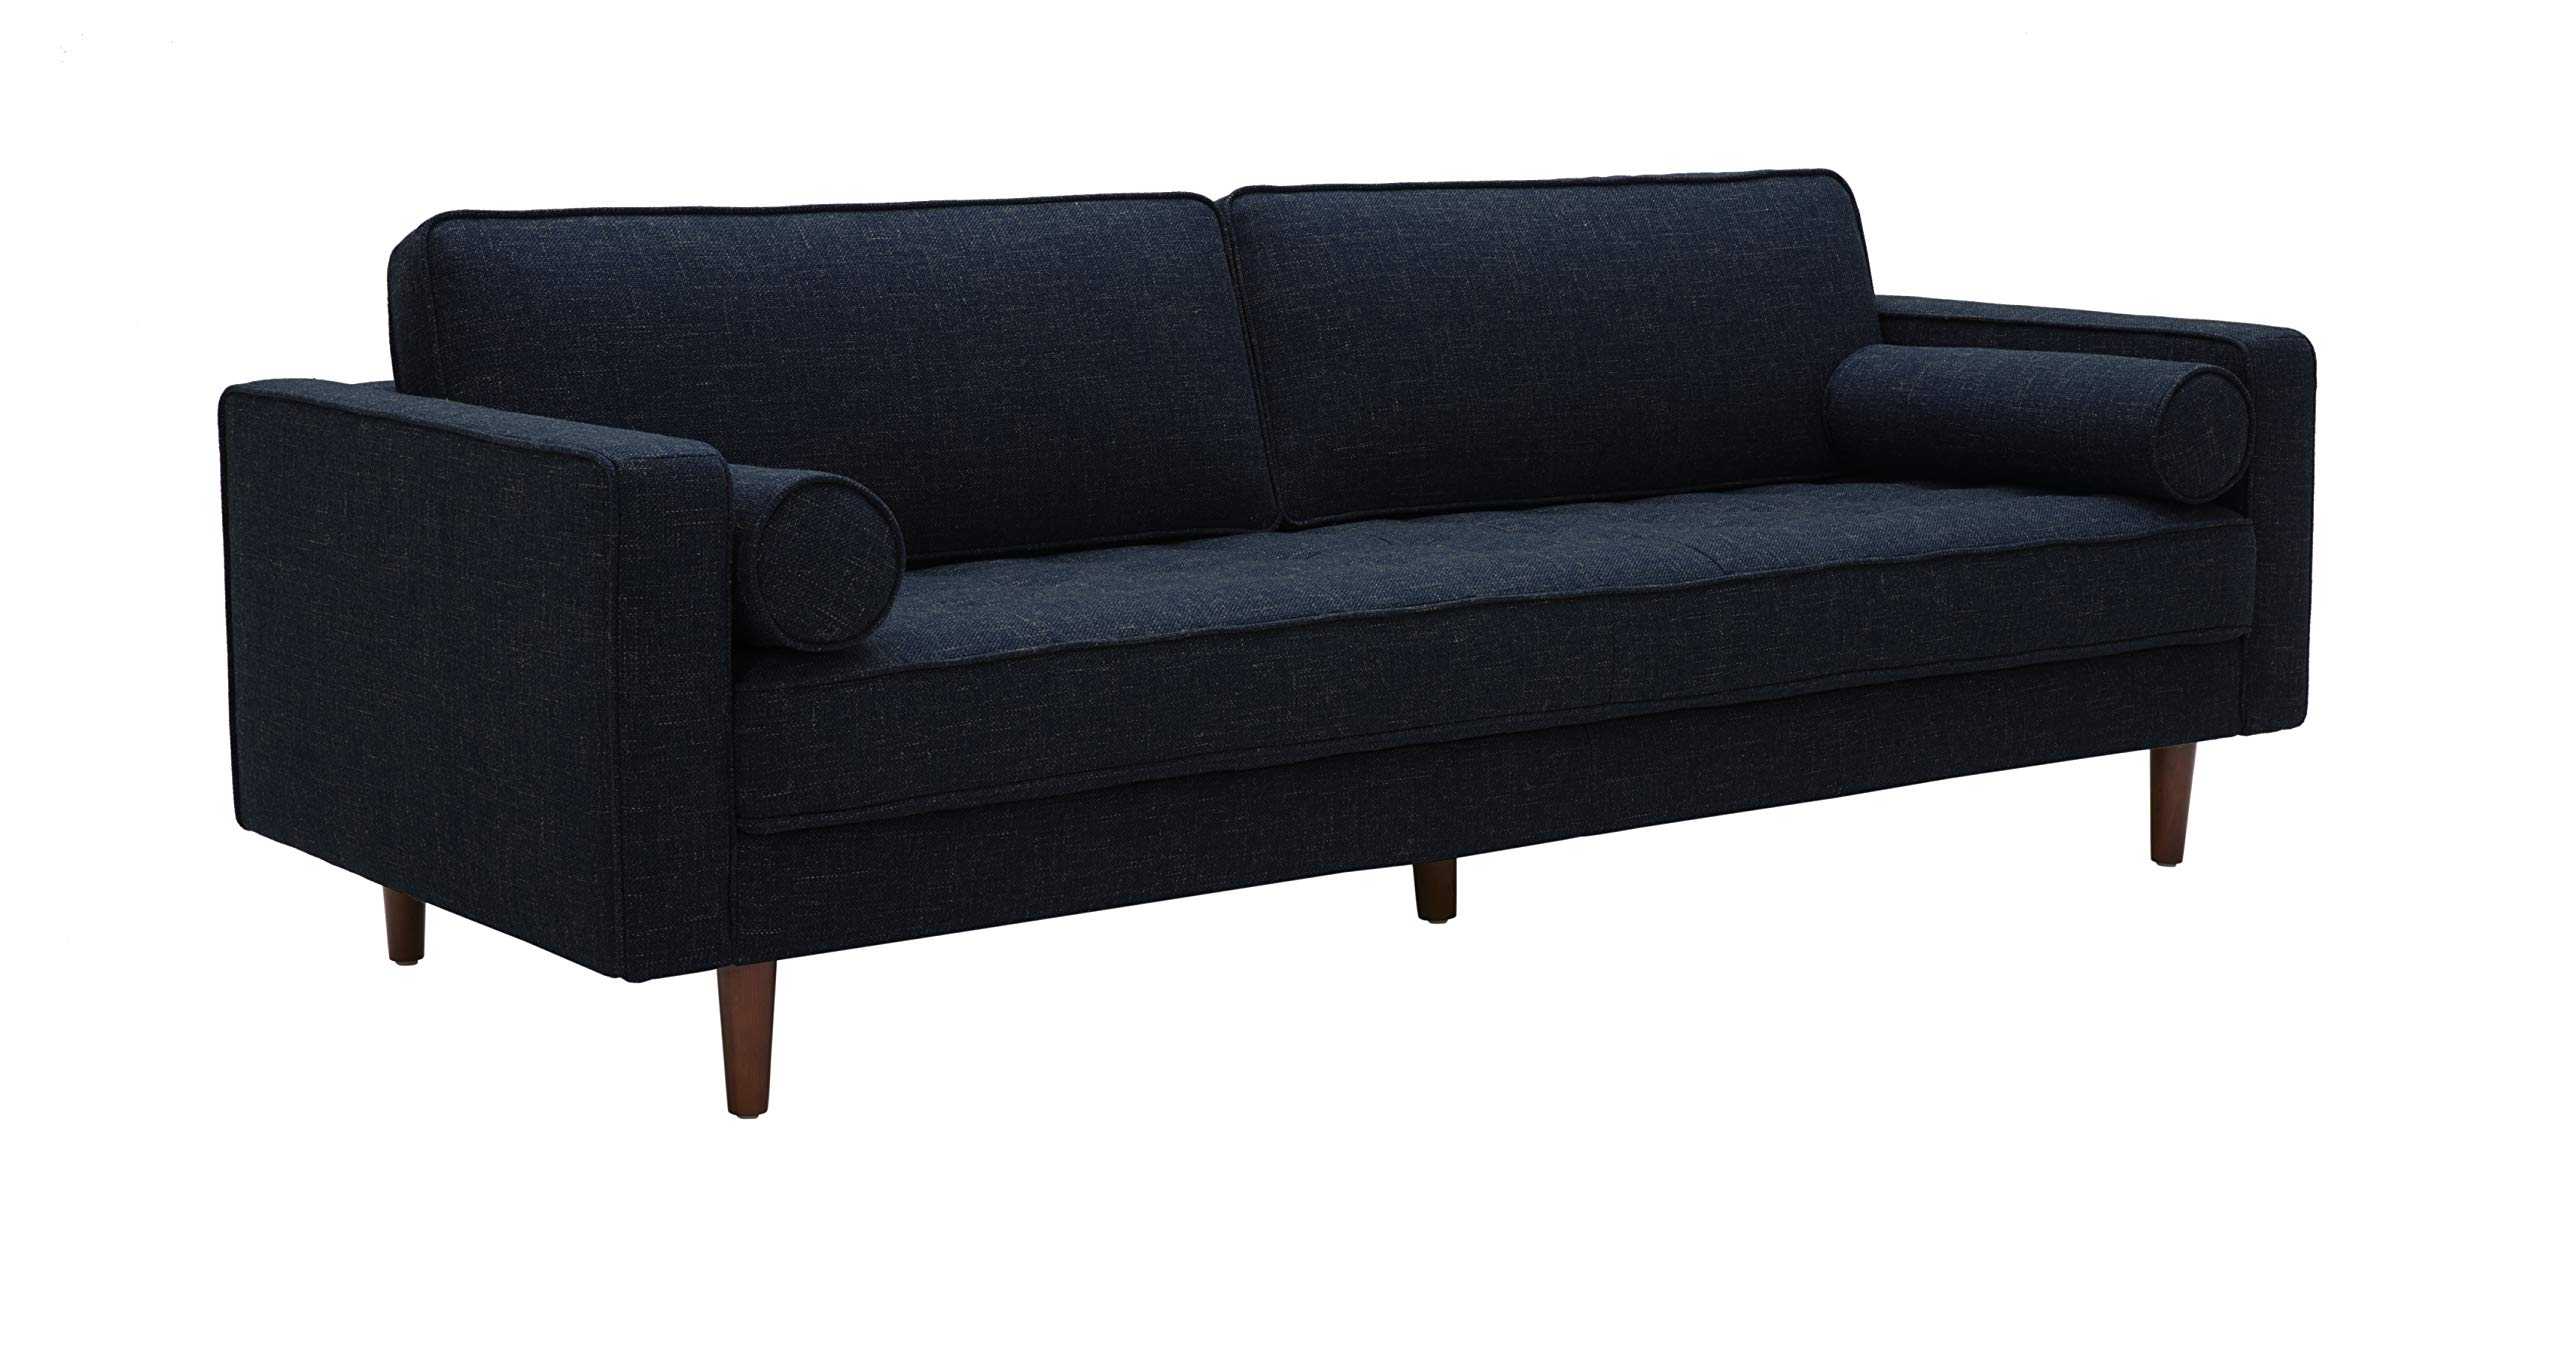 Rivet Aiden Mid-Century Sofa with Tapered Wood Legs, 87''W, Wathet Blue by Rivet